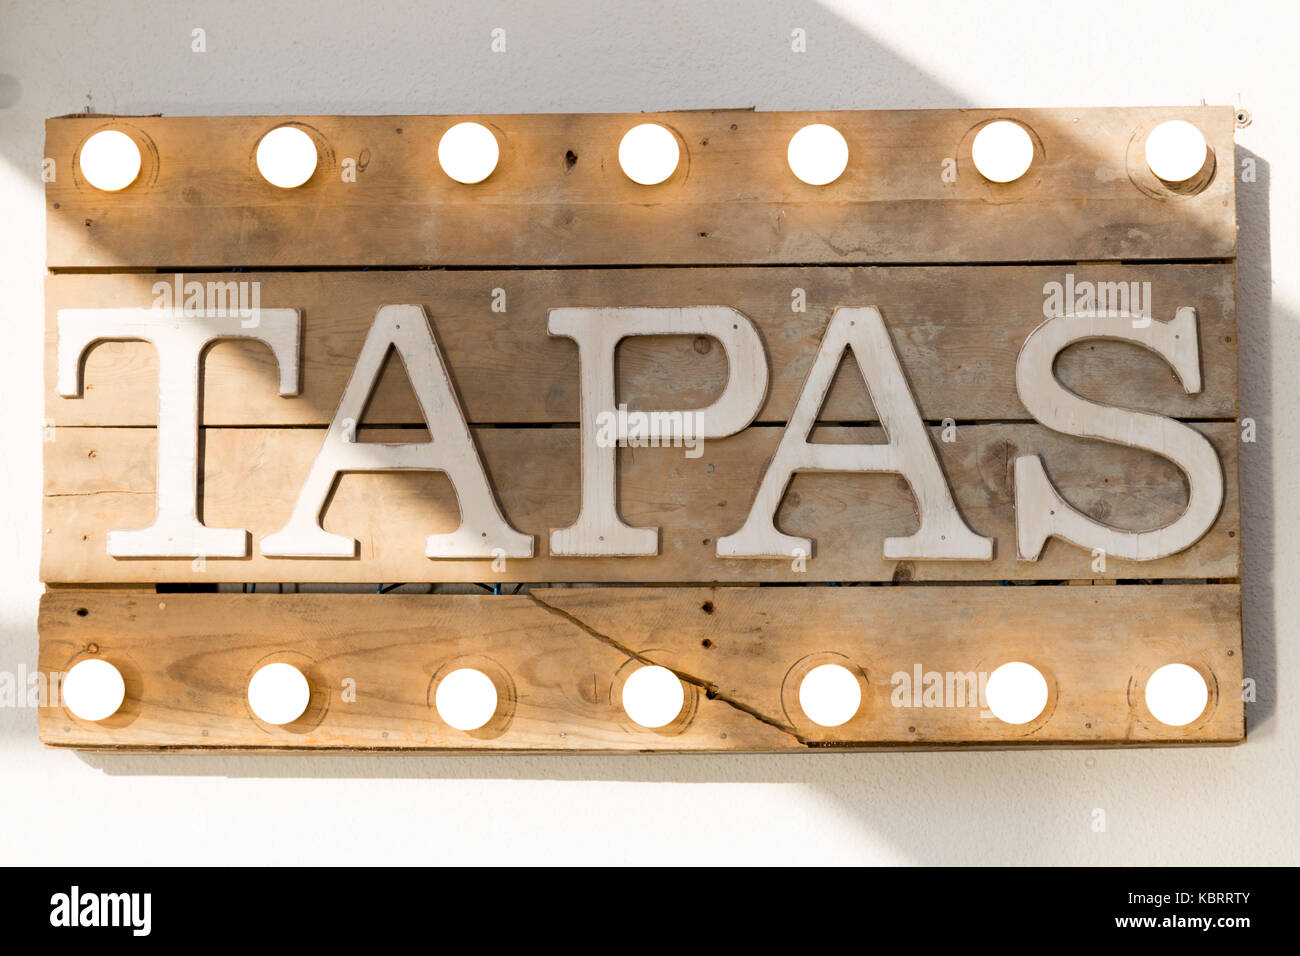 Tapas sign made of wooden planks and light bulbs on top and bottomStock Photo